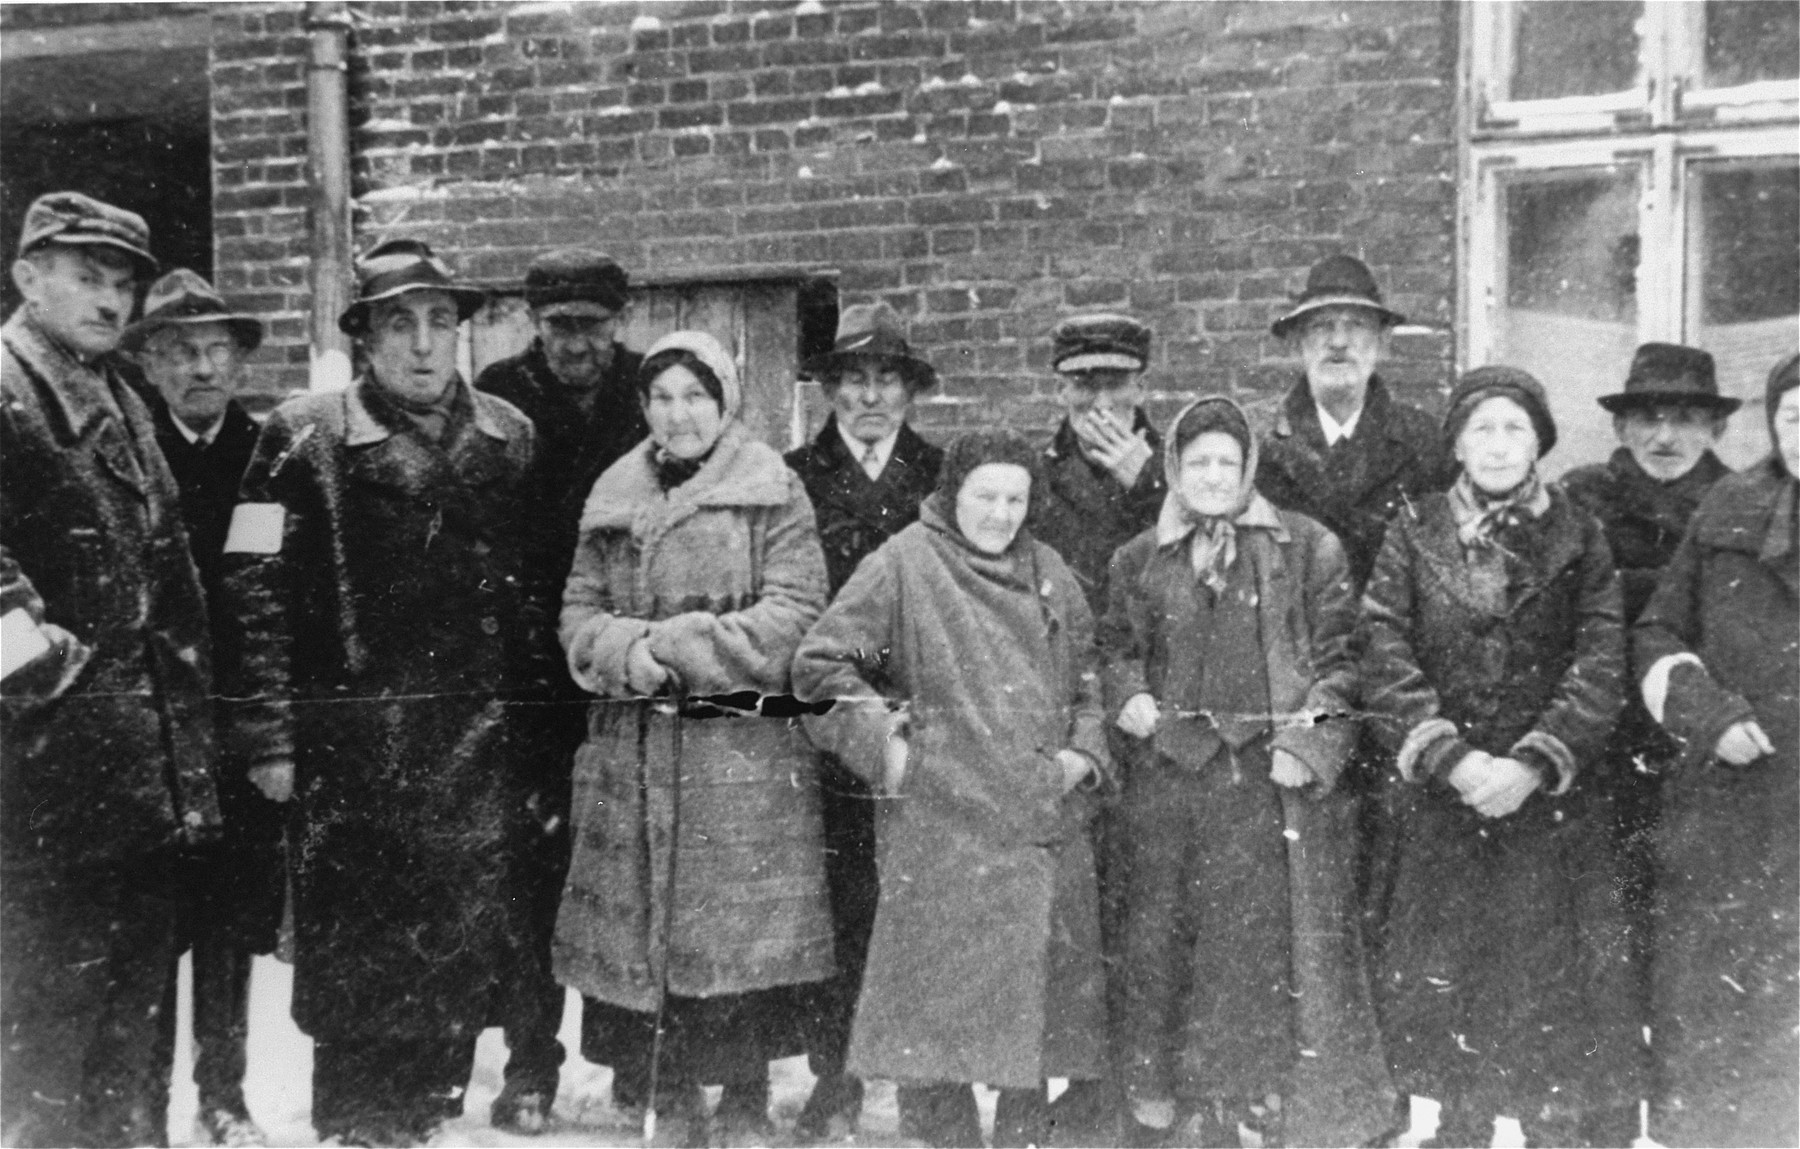 Group portrait of Jews from Vienna in front of a home for the elderly in the Kielce ghetto.